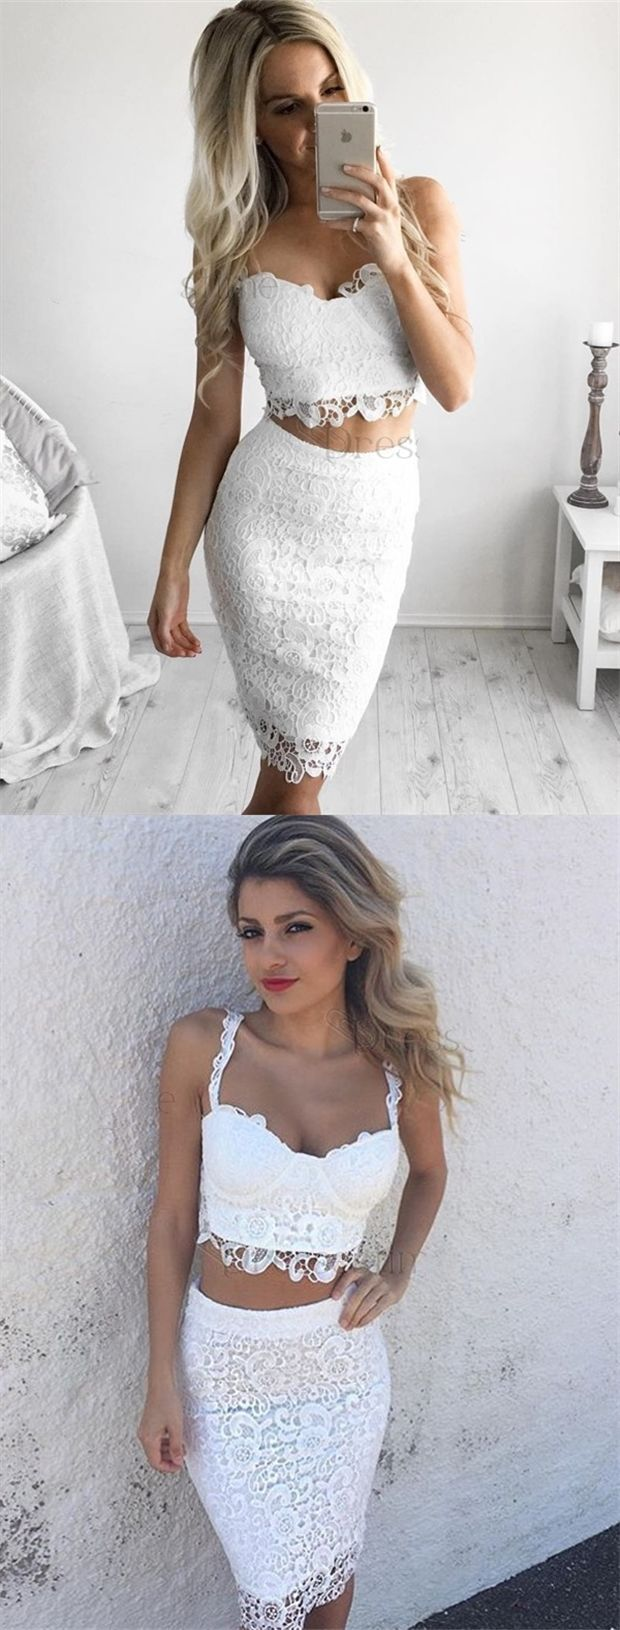 2 Piece White Lace Bodycon Dress For Teens Spagheti Straps Summer Outfits Simple Short Ho Homecoming Dresses Tight Homecoming Dresses Evening Dresses Vintage [ 1630 x 620 Pixel ]